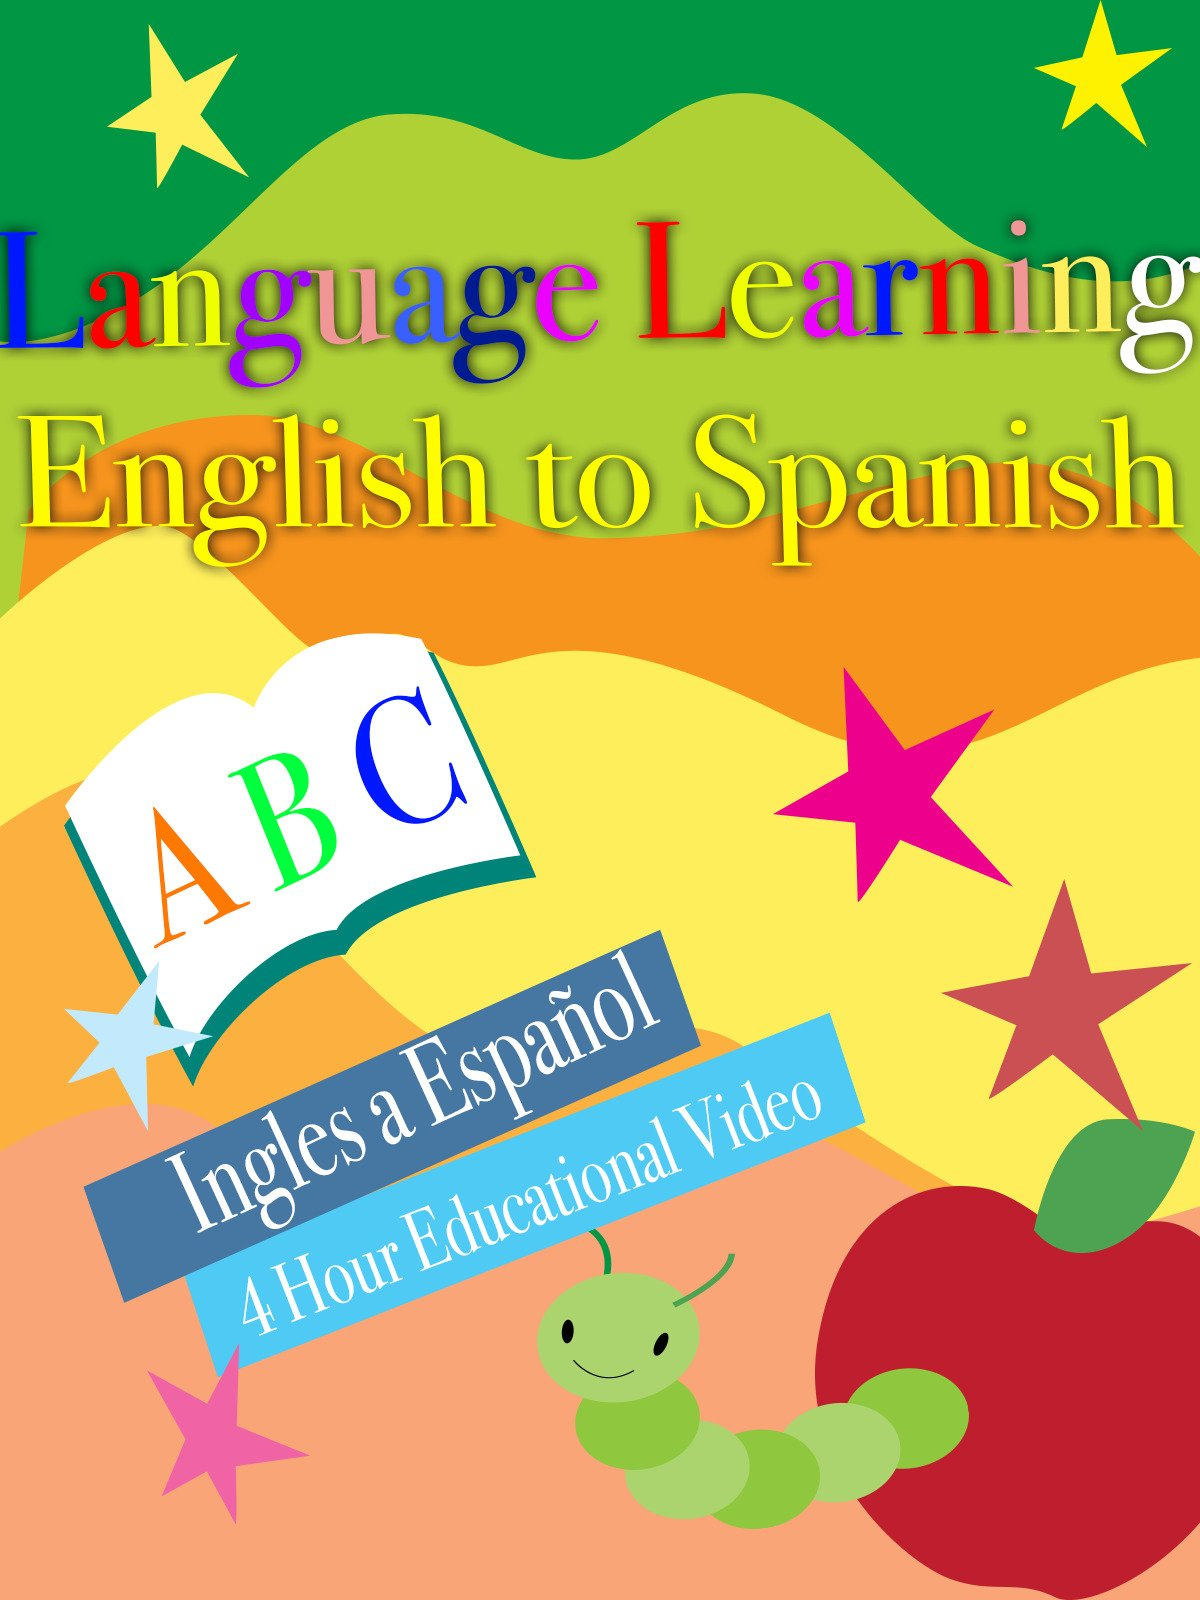 Language Learning English to Spanish Ingles a Español 4 Hour Educational Video